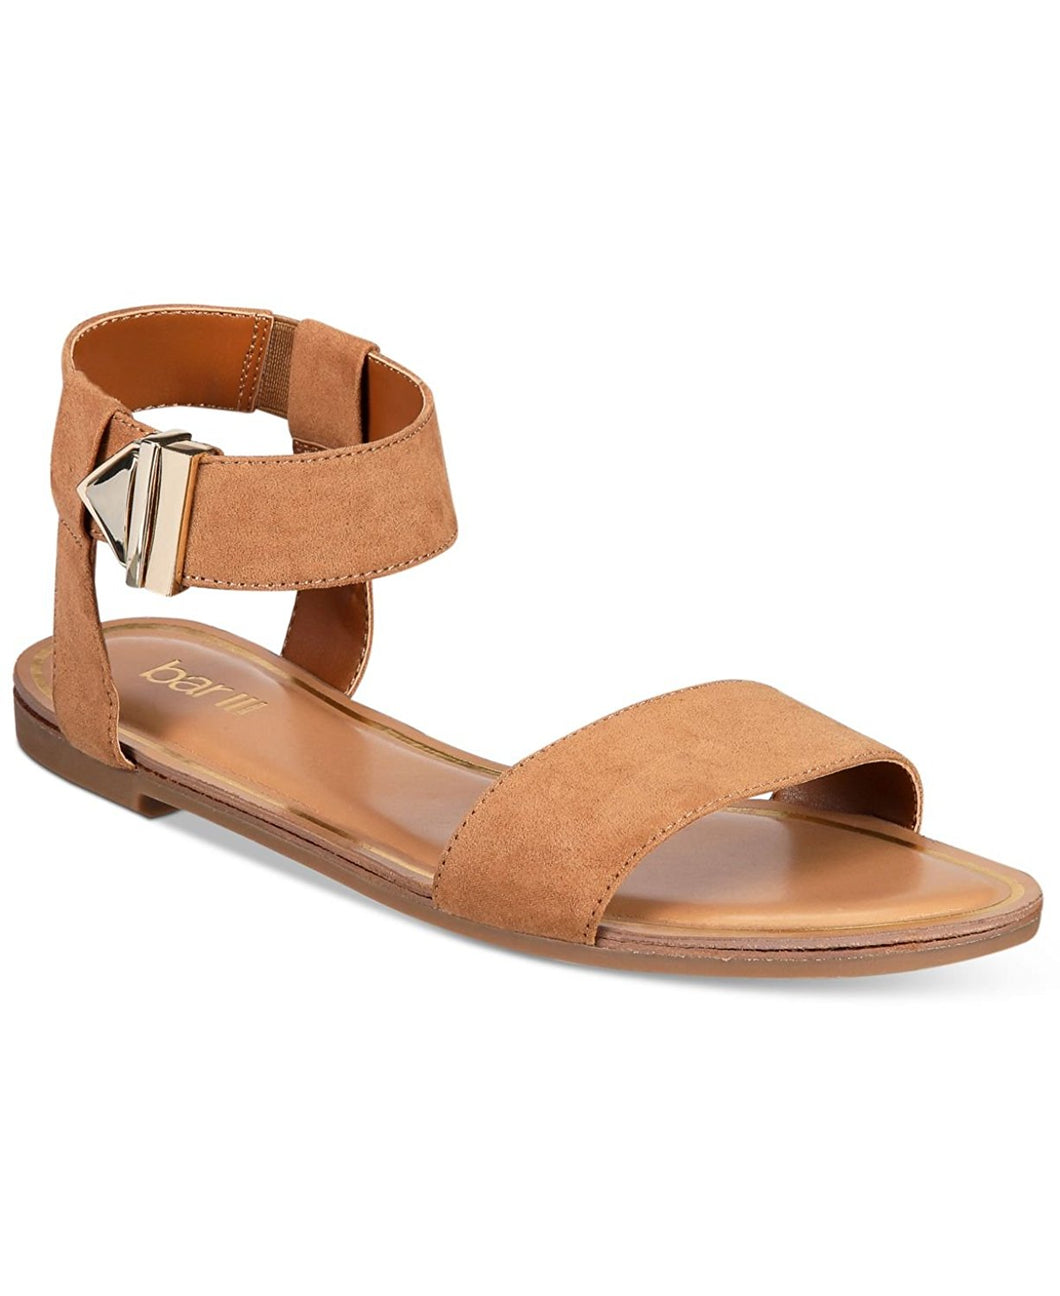 Bar III Victor Two-Piece Flat Sandals